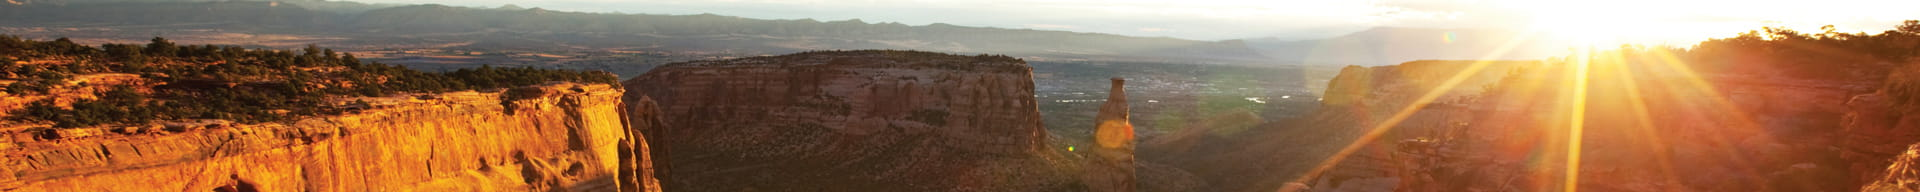 colorado-monument-at-sunrise